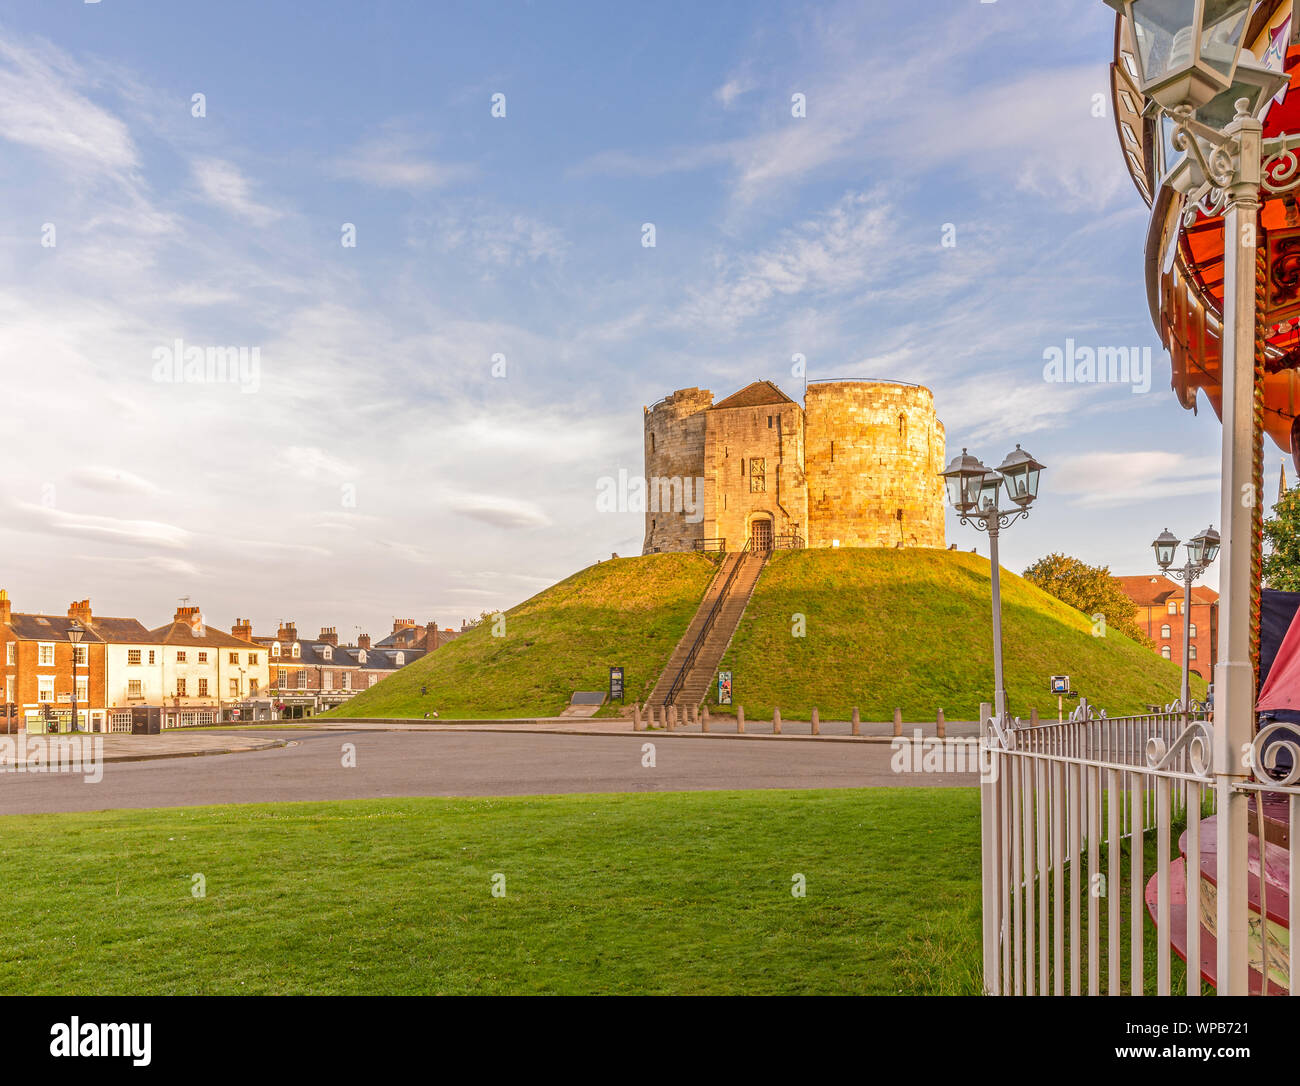 Clifford's Tower a famous York landmark caught in the golden light of dawn.  Steps lead up to the ancient tower and a carousel is in the foreground. Stock Photo